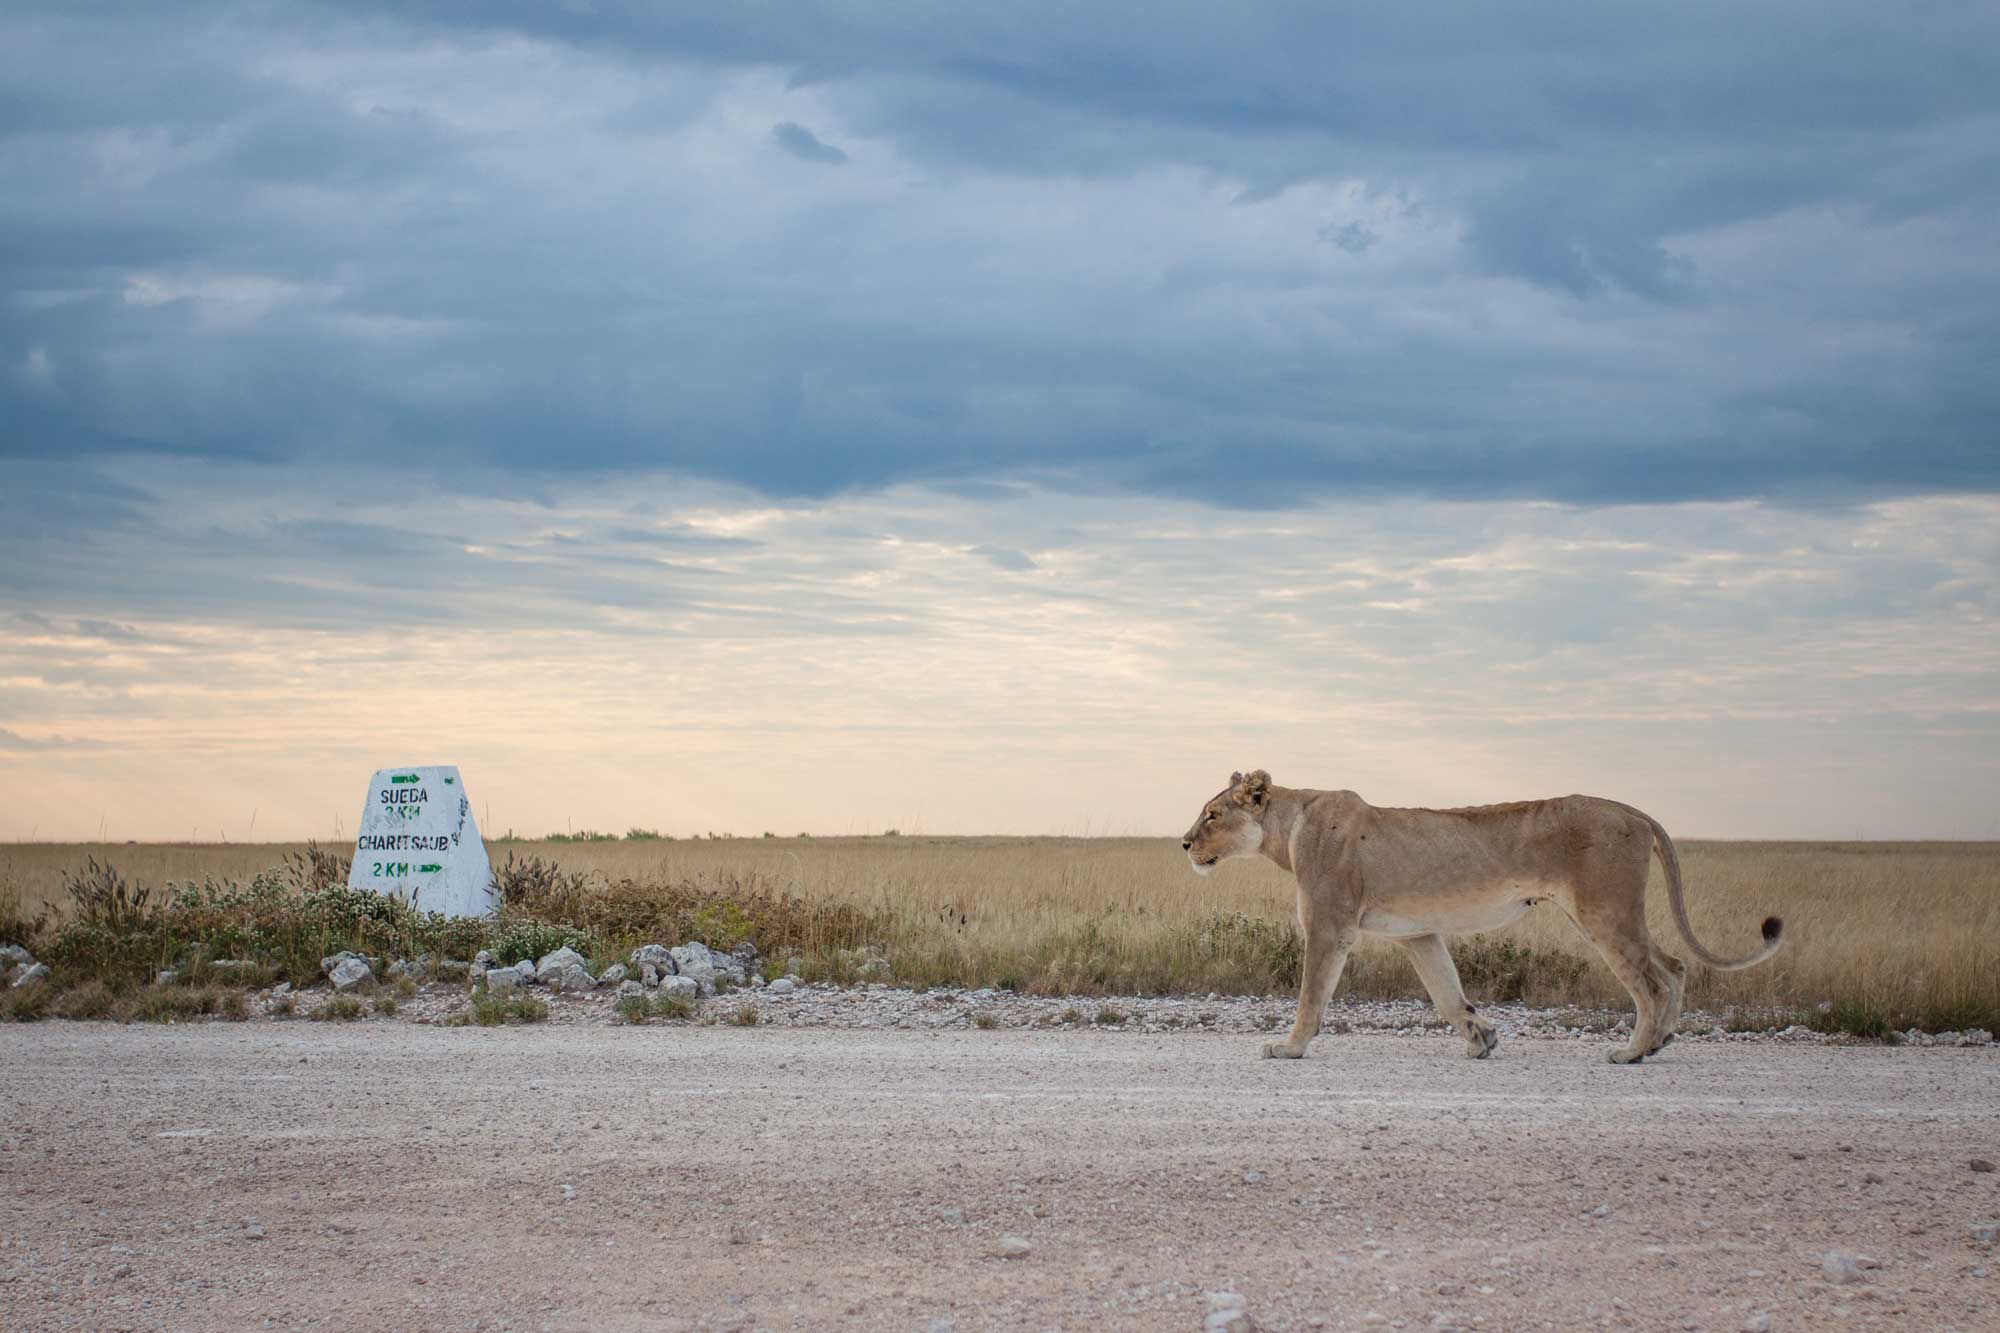 LIONESS-NEAR-SALVADORA-TURNOFF